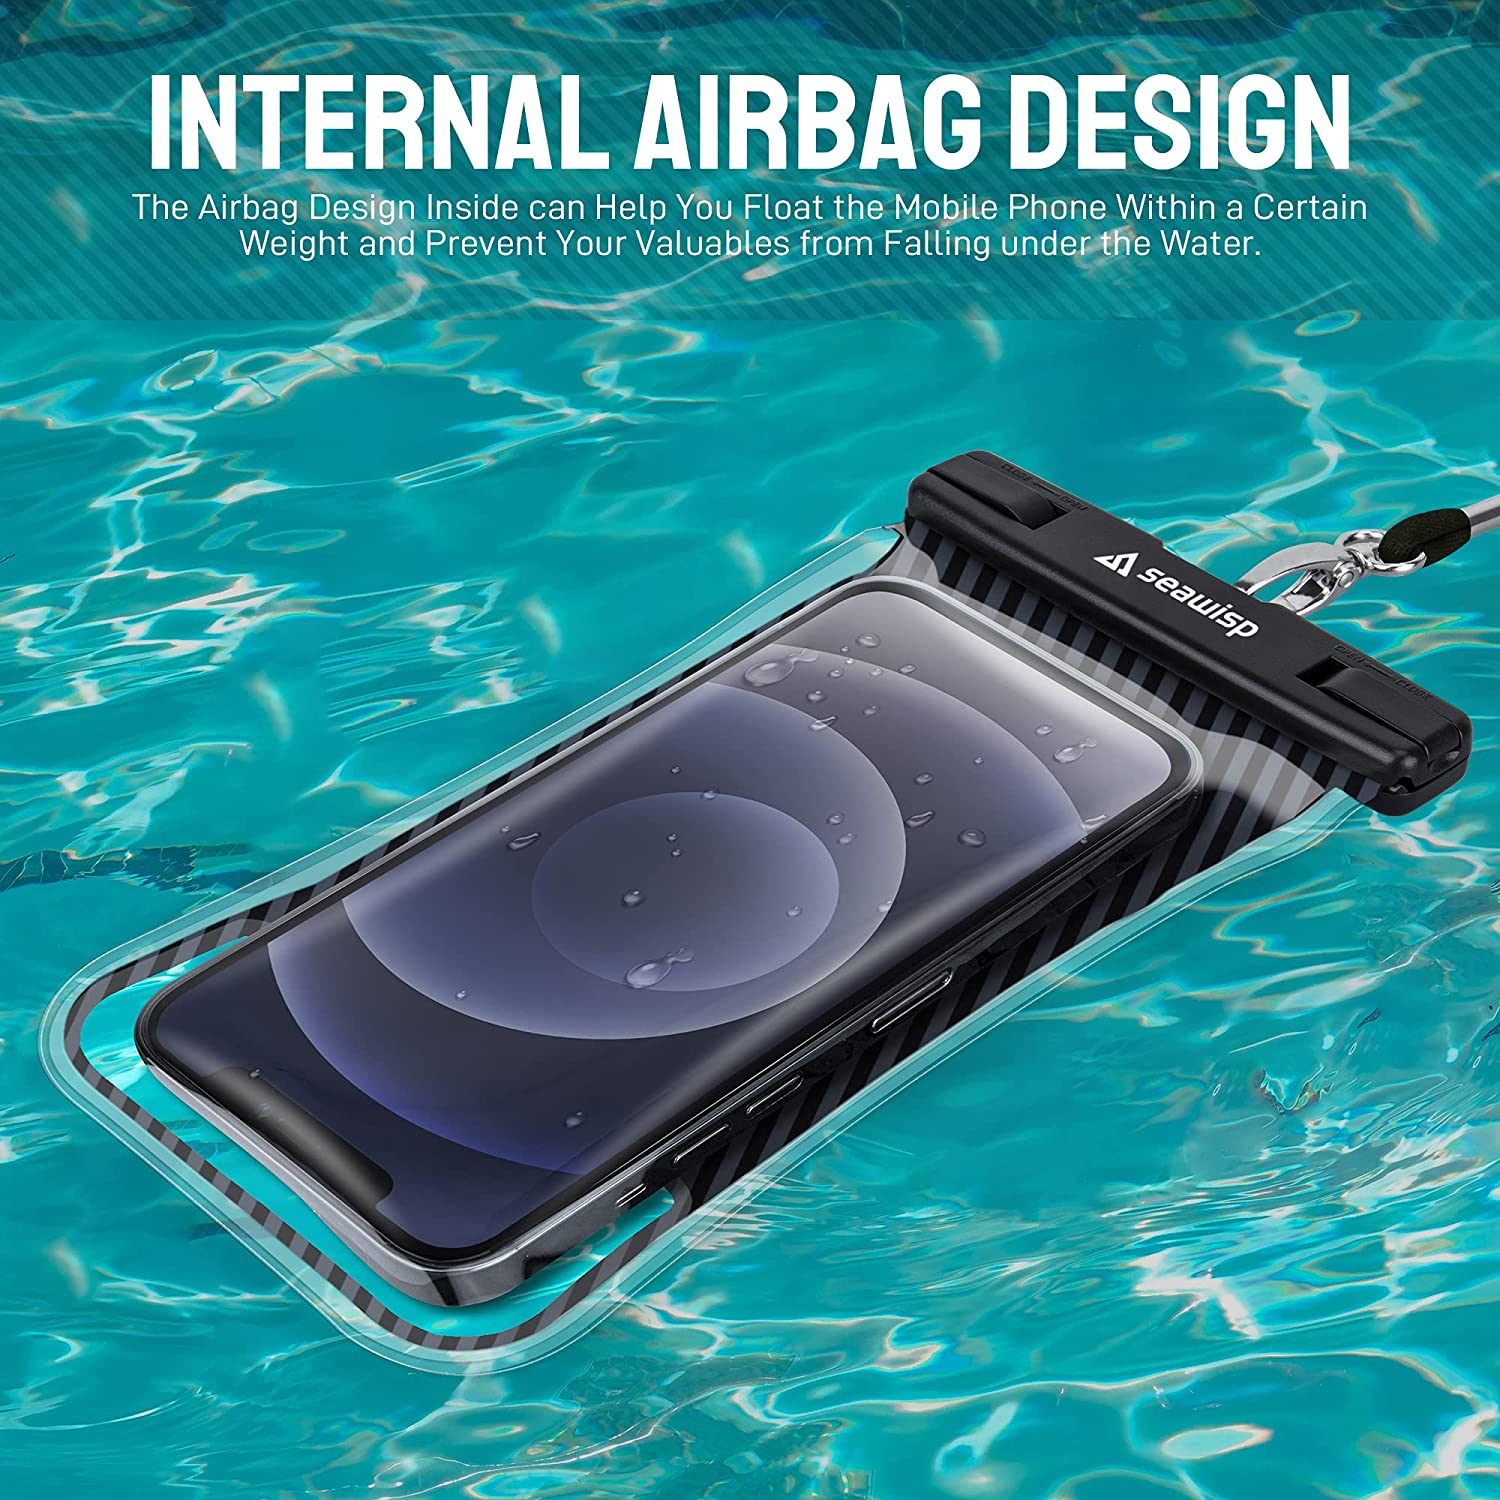 Seawisp Universal Waterproof Phone Case, Floating Pouch Cellphone Lanyard Dry Bag. Compatible with iPhone 12 Pro 11 Pro Xs XR X 8 7 6S Plus SE and More, for Kayaking Swimming Boating Traveling, Black